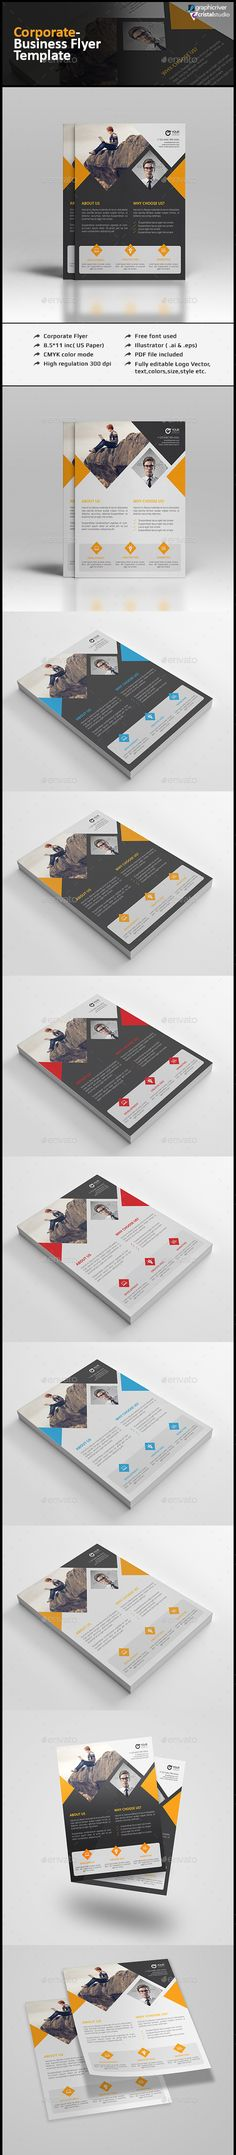 Corporate Clean Flyer Template Vector EPS, AI Illustrator #design Download: http://graphicriver.net/item/corporate-clean-flyer/13472865?ref=ksioks